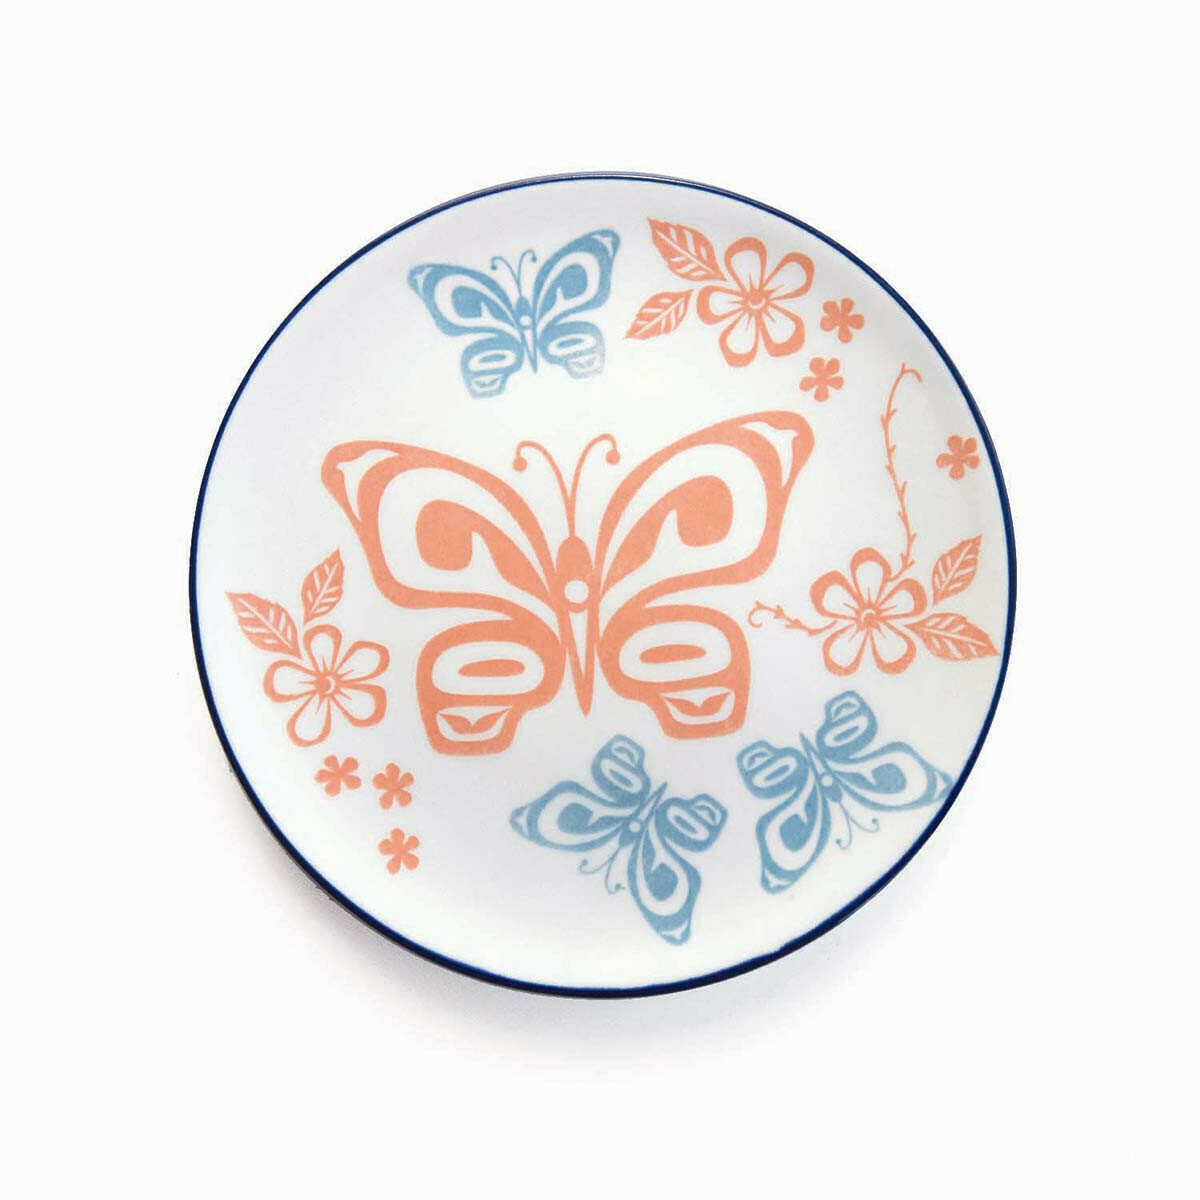 Porcelain Art Plate - Butterfly and Wild Rose